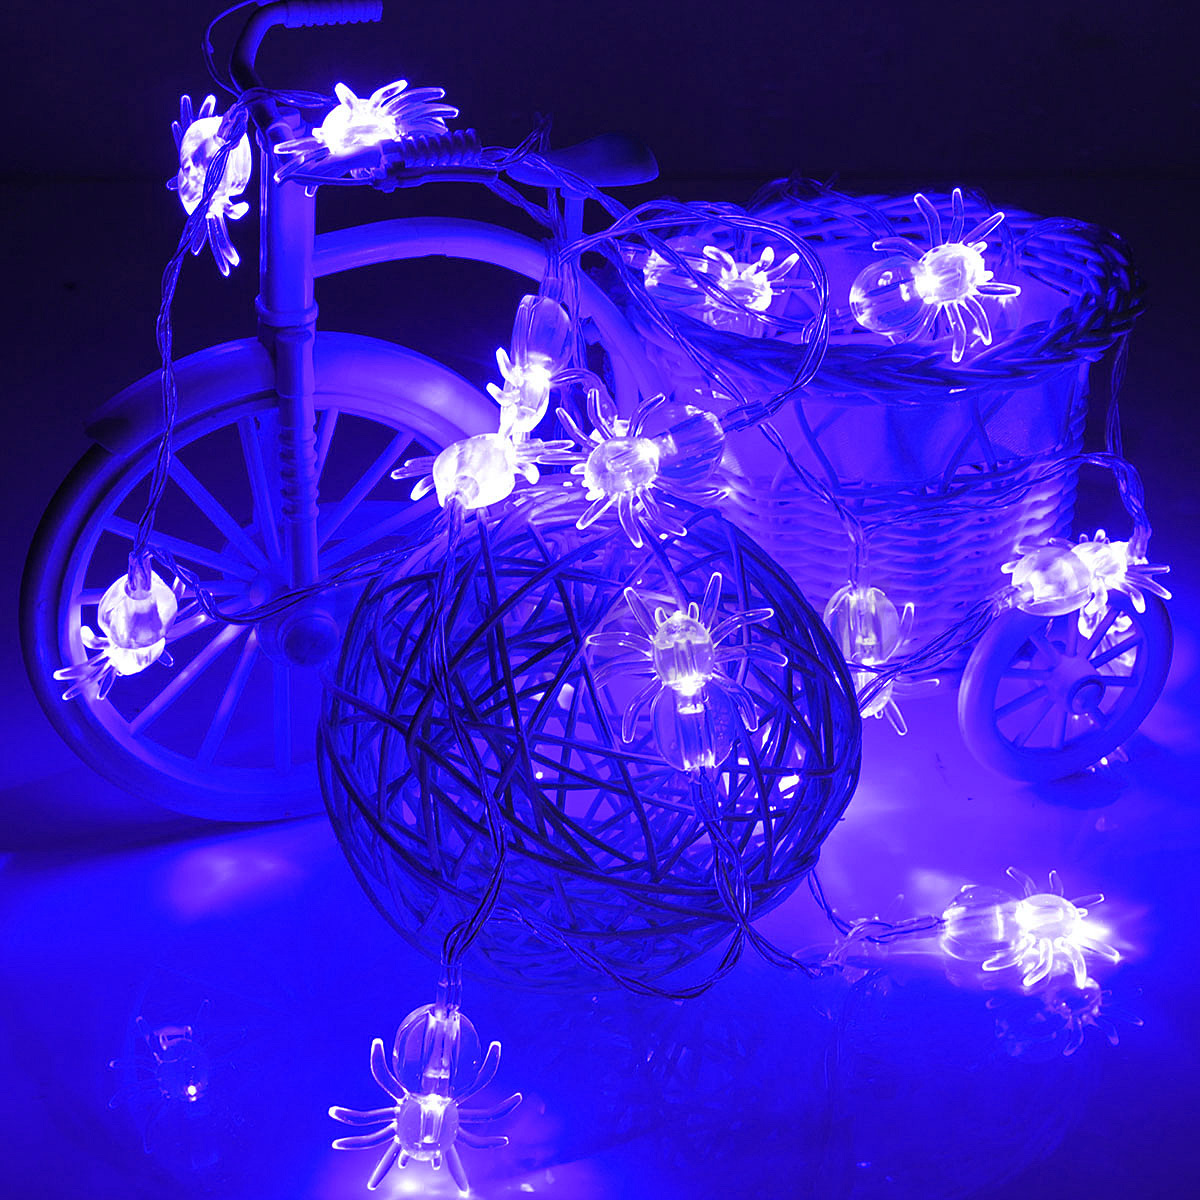 Halloween Purple Led String Lights : 20 LED Spiders String Fairy Lights Lamps Halloween Xmas Party Home Decor Purple eBay